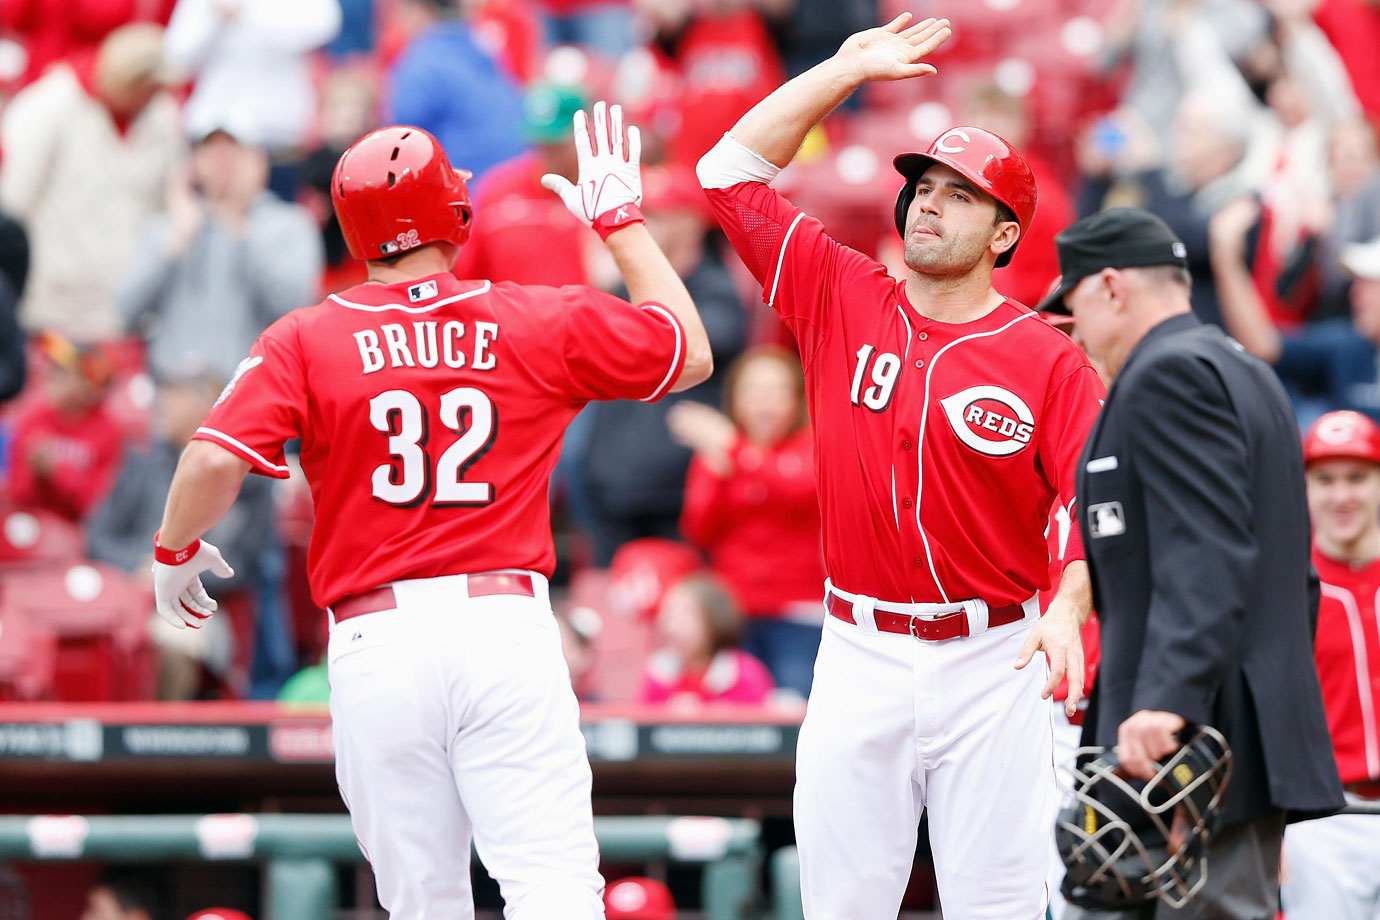 Highest salaries: Joey Votto ($14,000,000), Jay Bruce ($12,041,667), Brandon Phillips ($12,000,000)